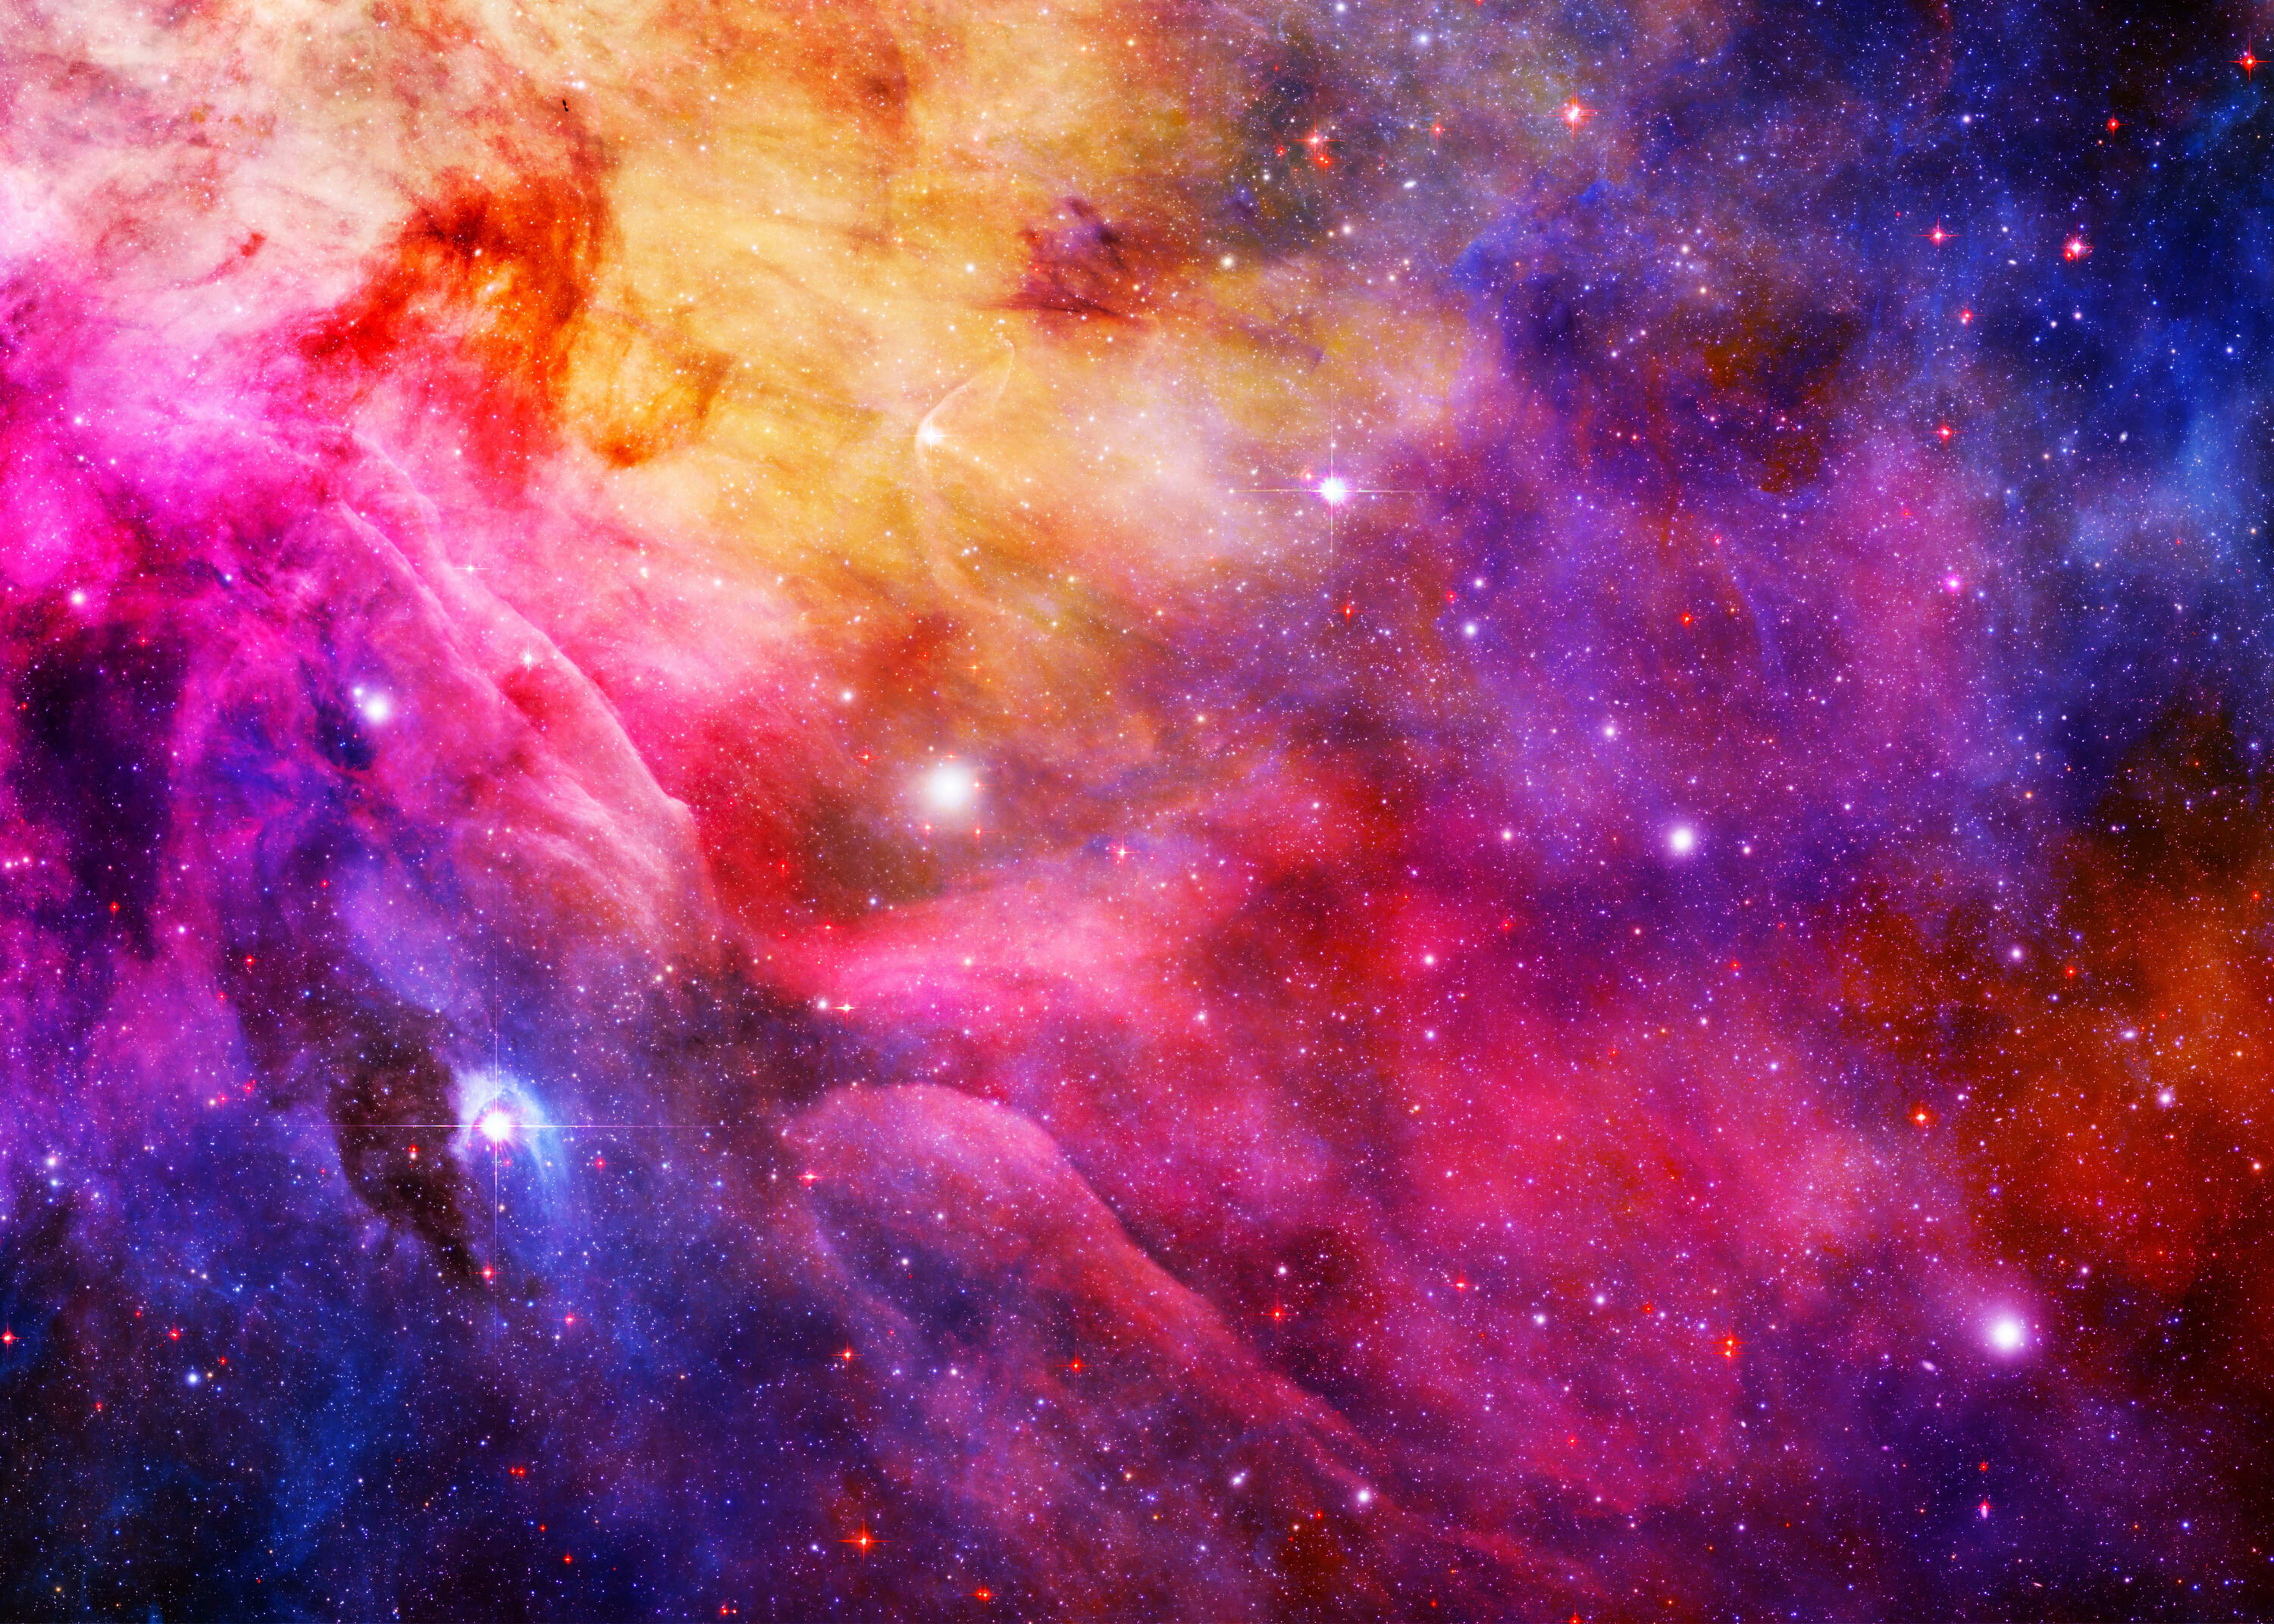 camden removable watercolor galaxy 658 l x 125 w wall mural